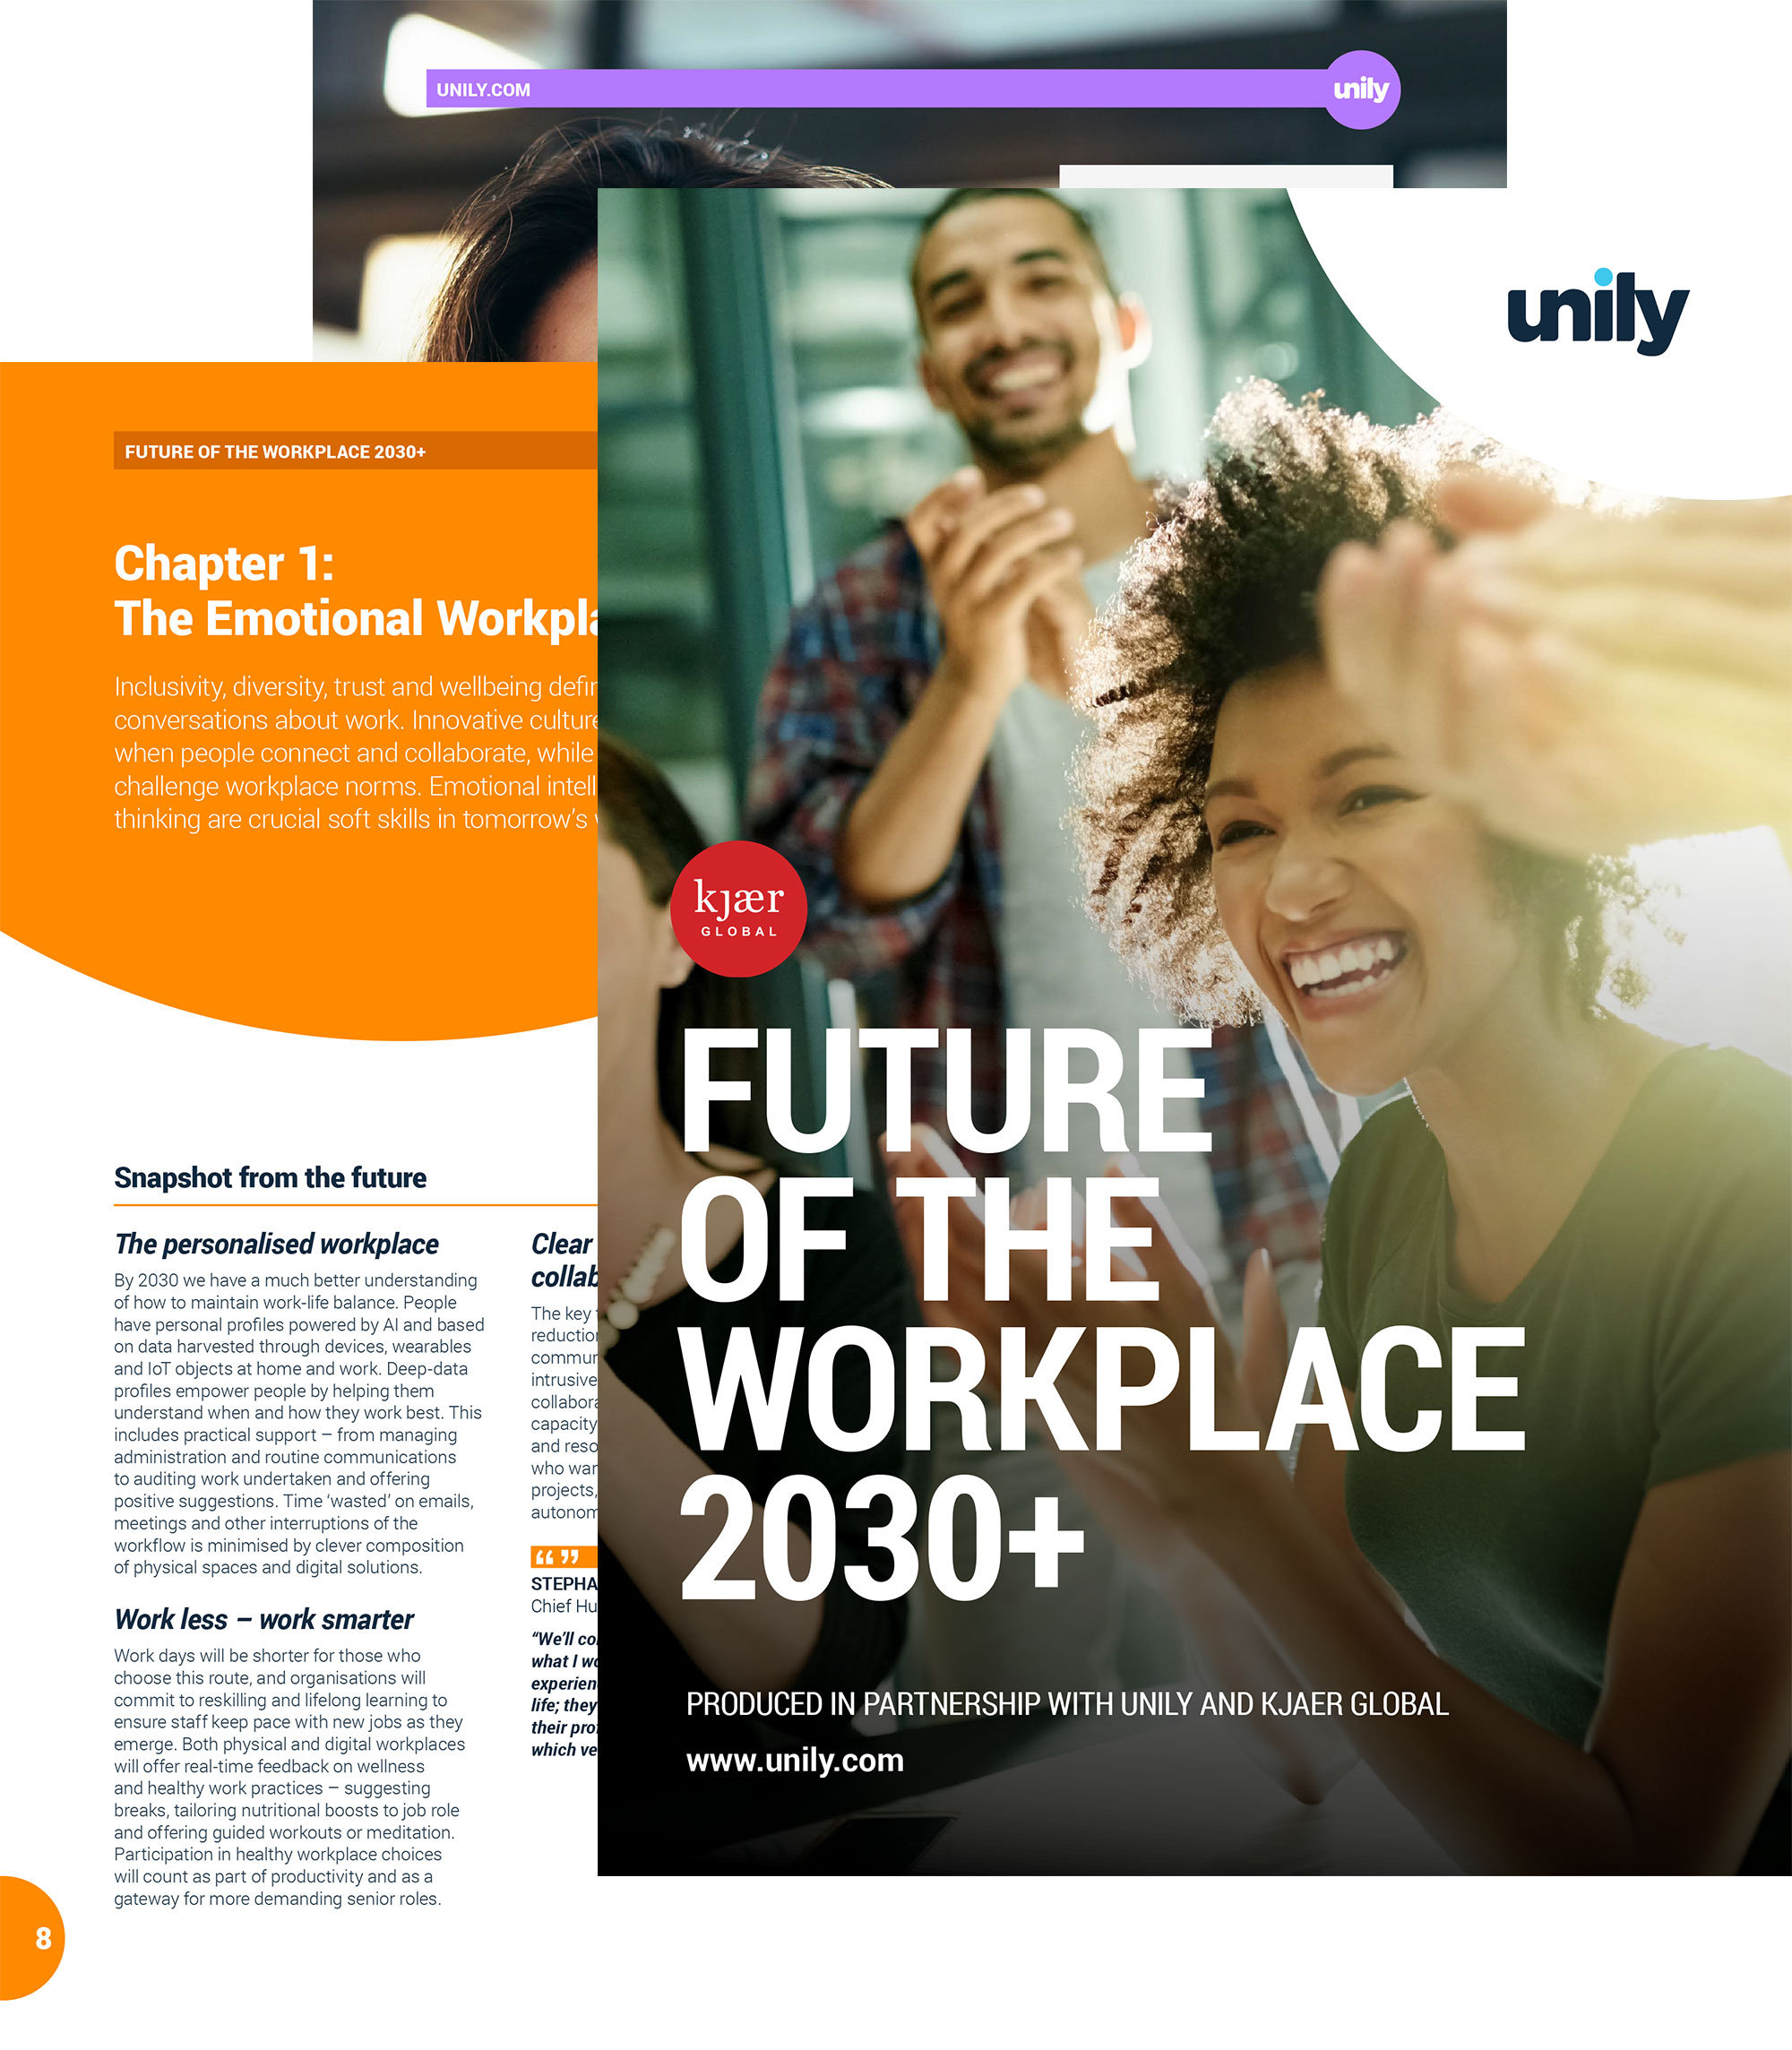 future of the workplace guide cover